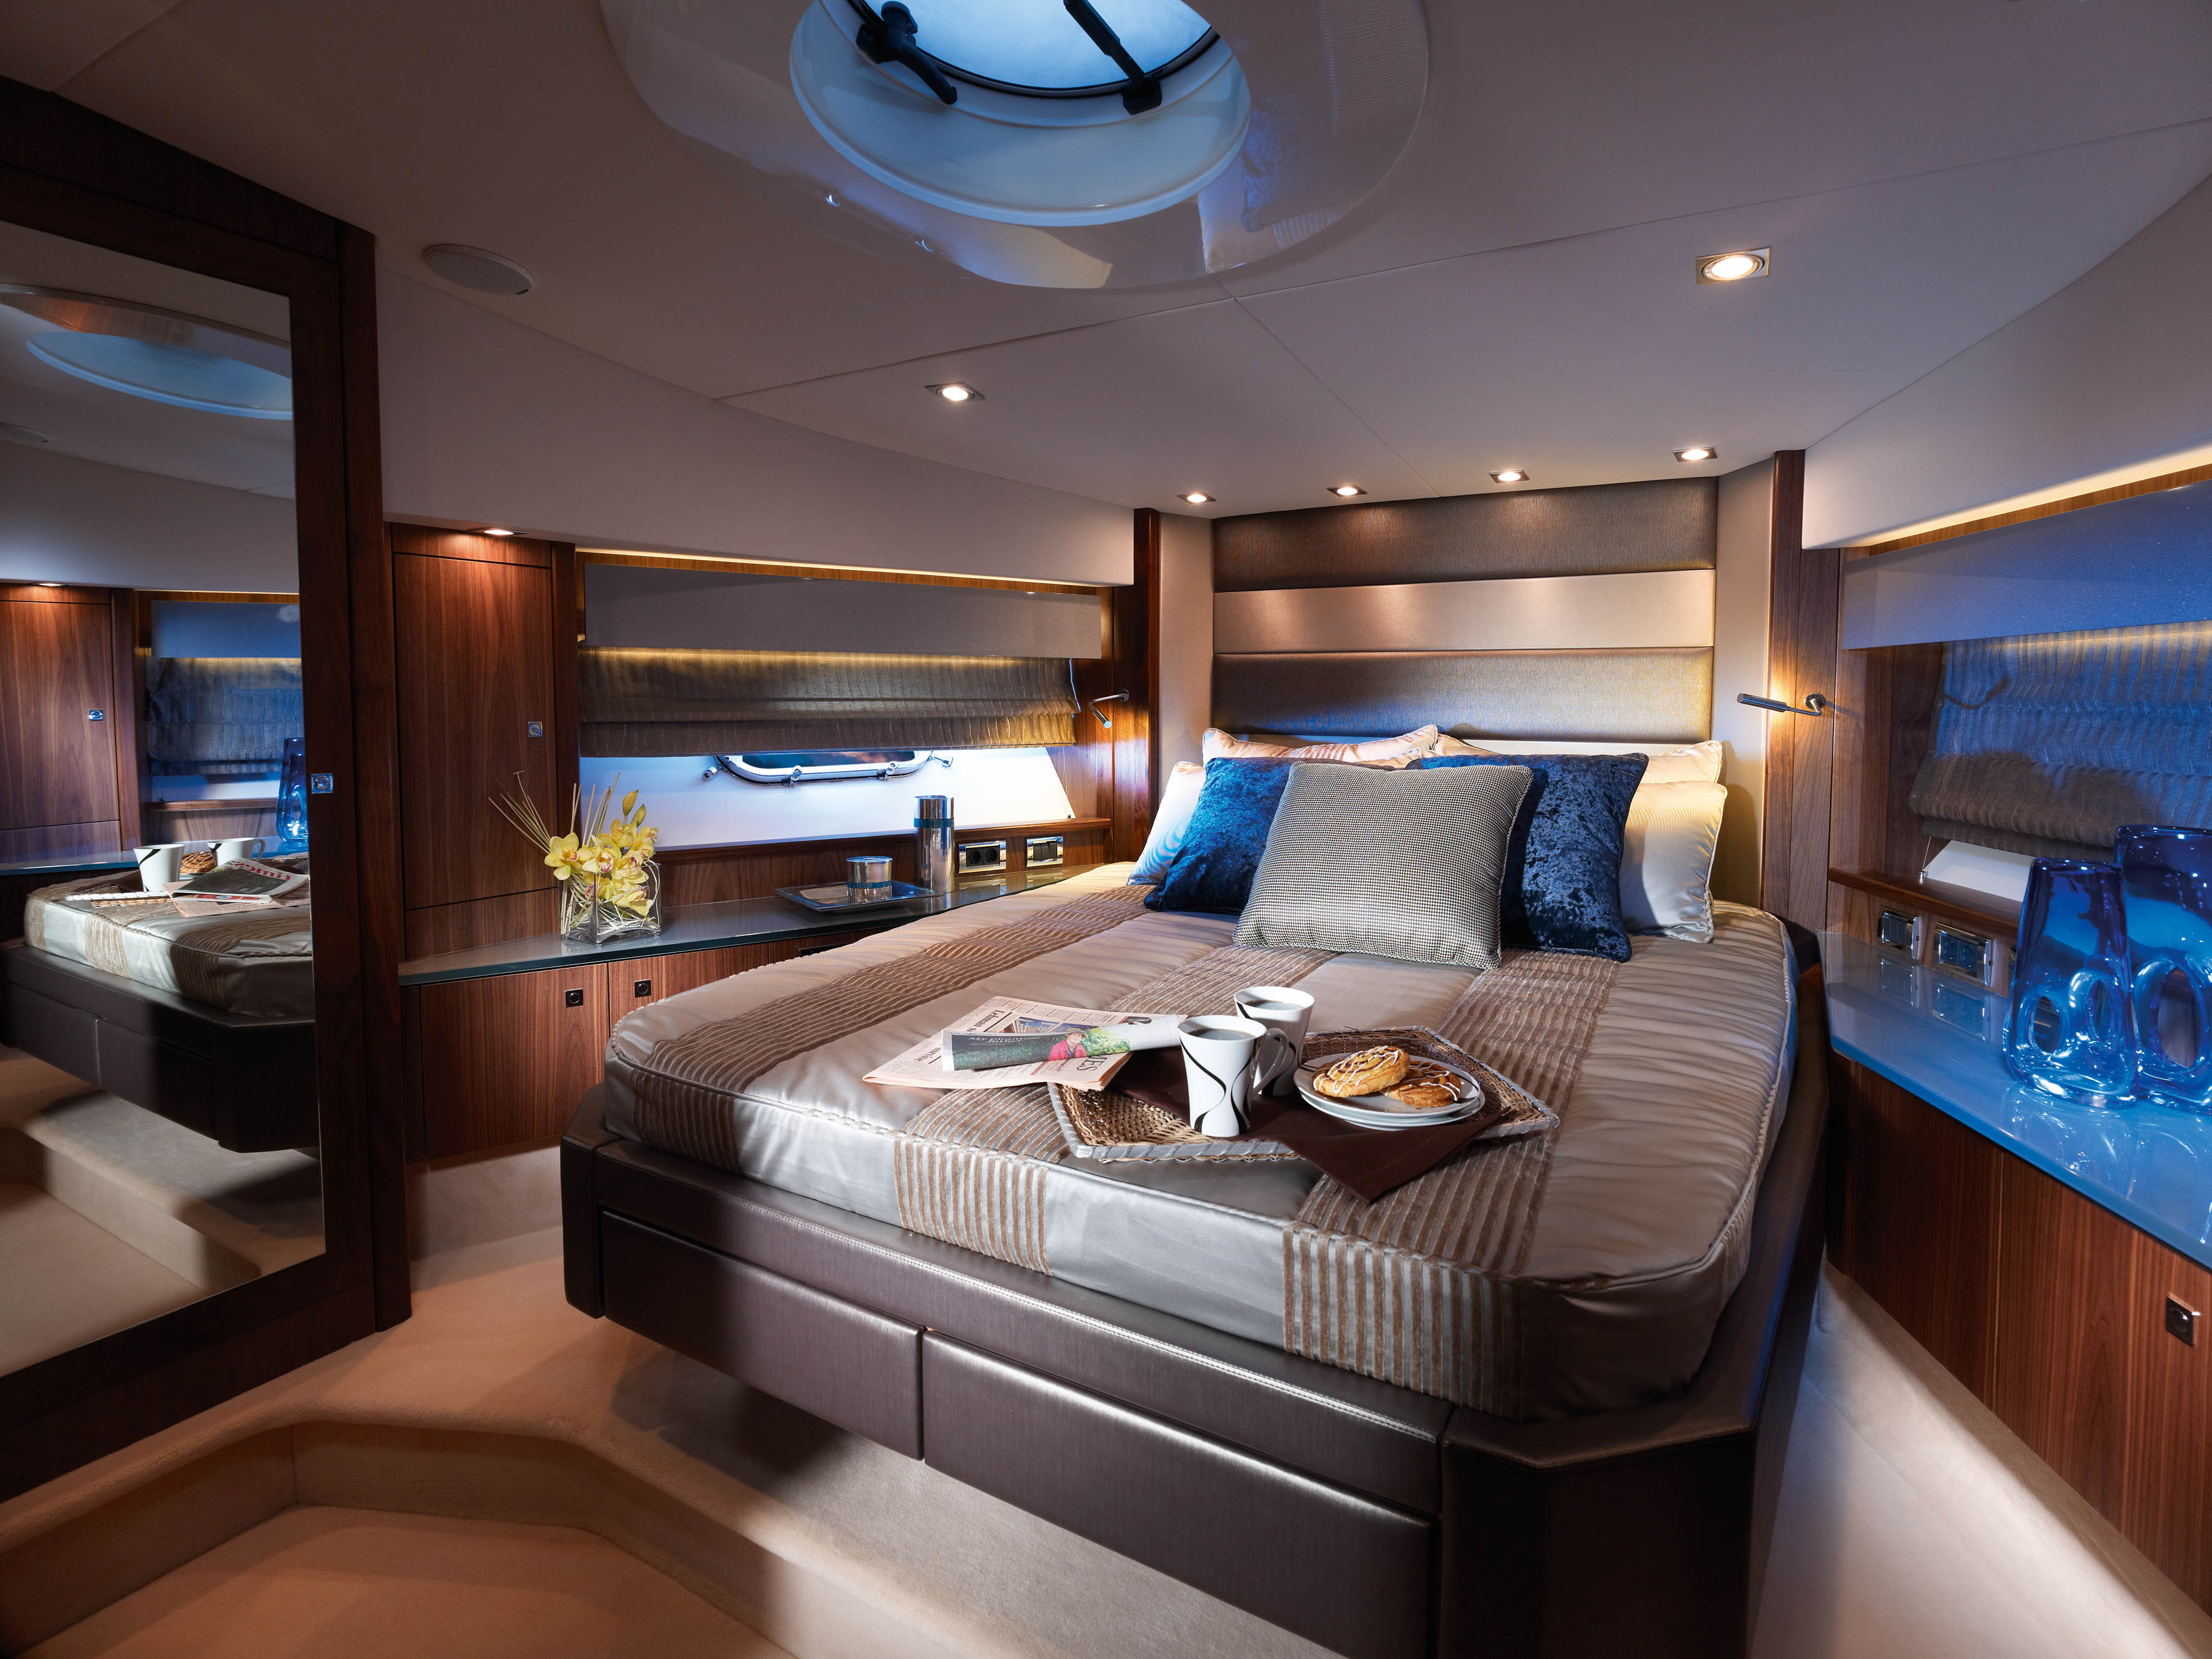 Inside Luxury Yachts Powered Solutions From Oceanair Image Credit To